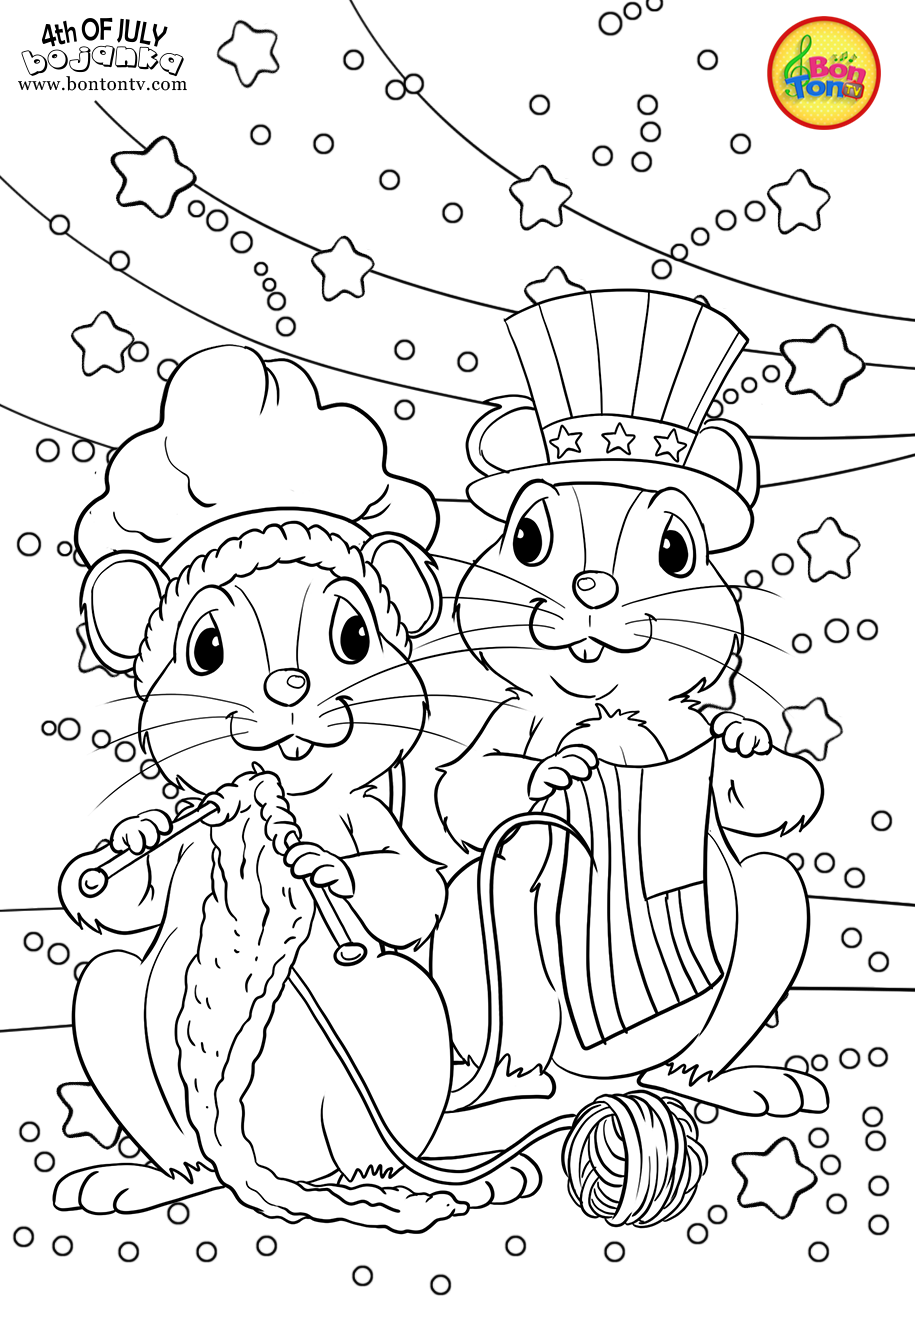 Independence Day Fourth Of July July 4th 4th Of July Usa America Free Printable Co Christmas Coloring Pages Free Printable Coloring Pages Coloring Pages [ 1321 x 915 Pixel ]